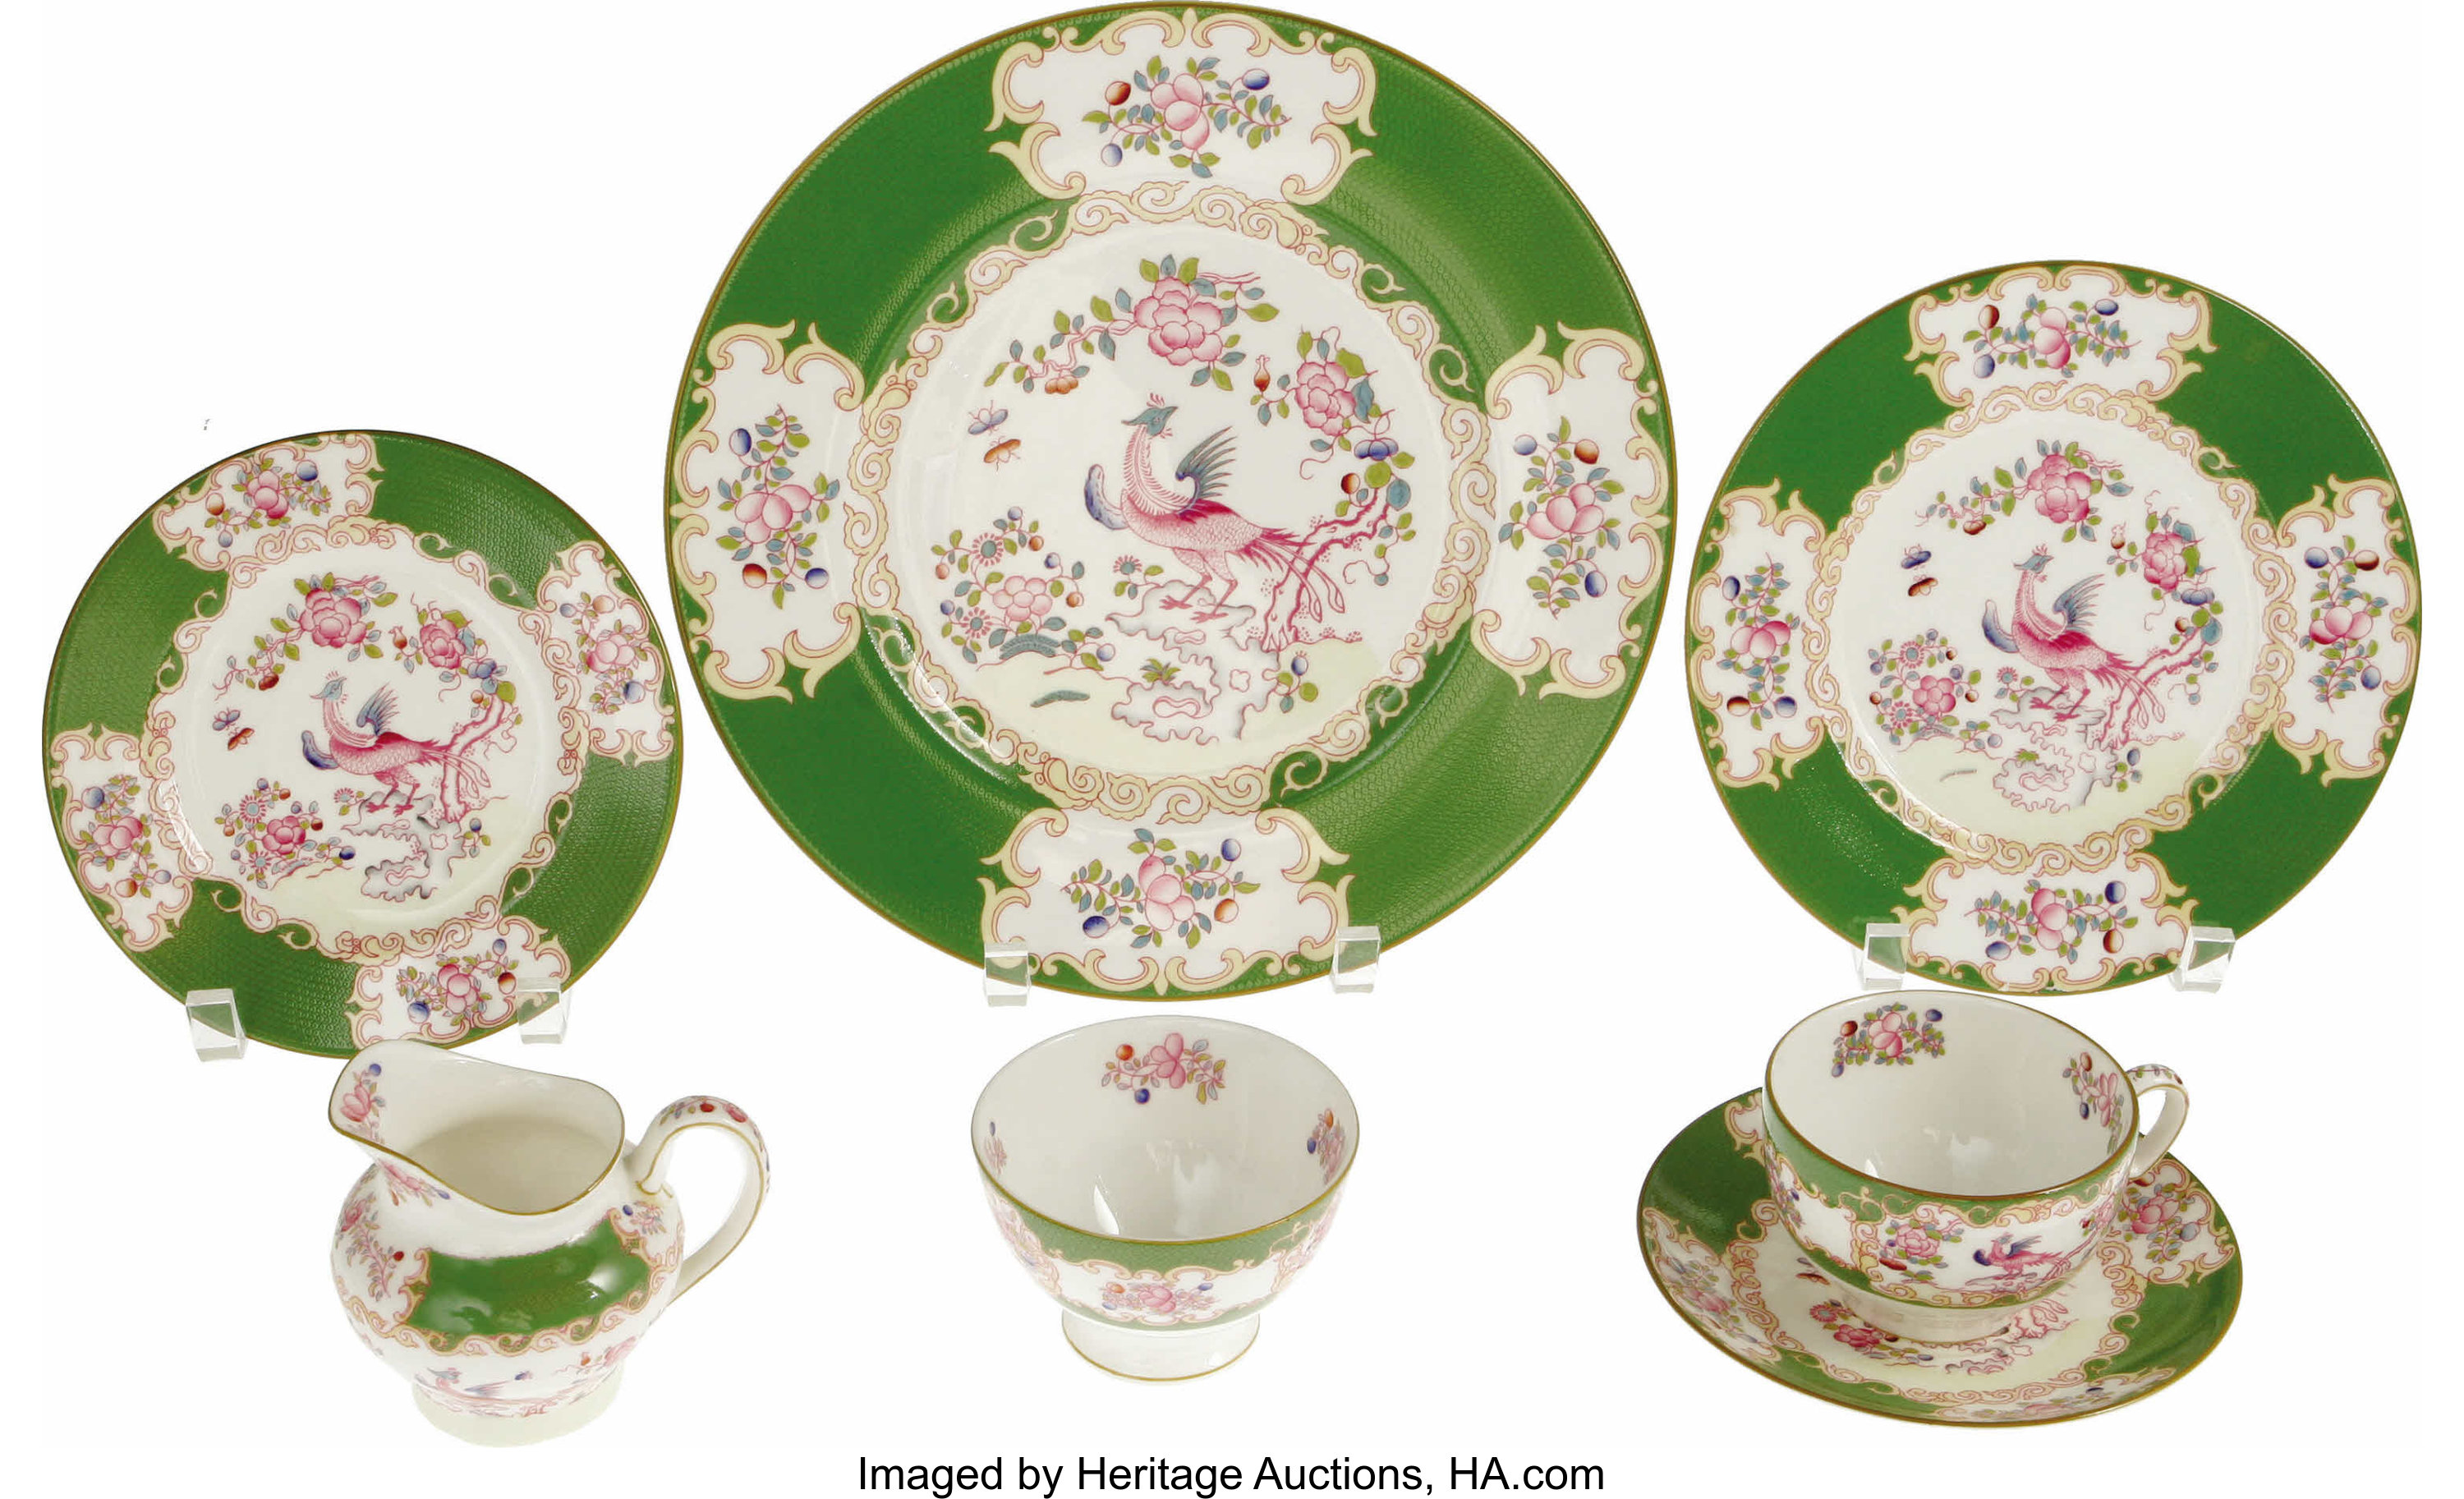 Ava Gardner Owned Minton China Green